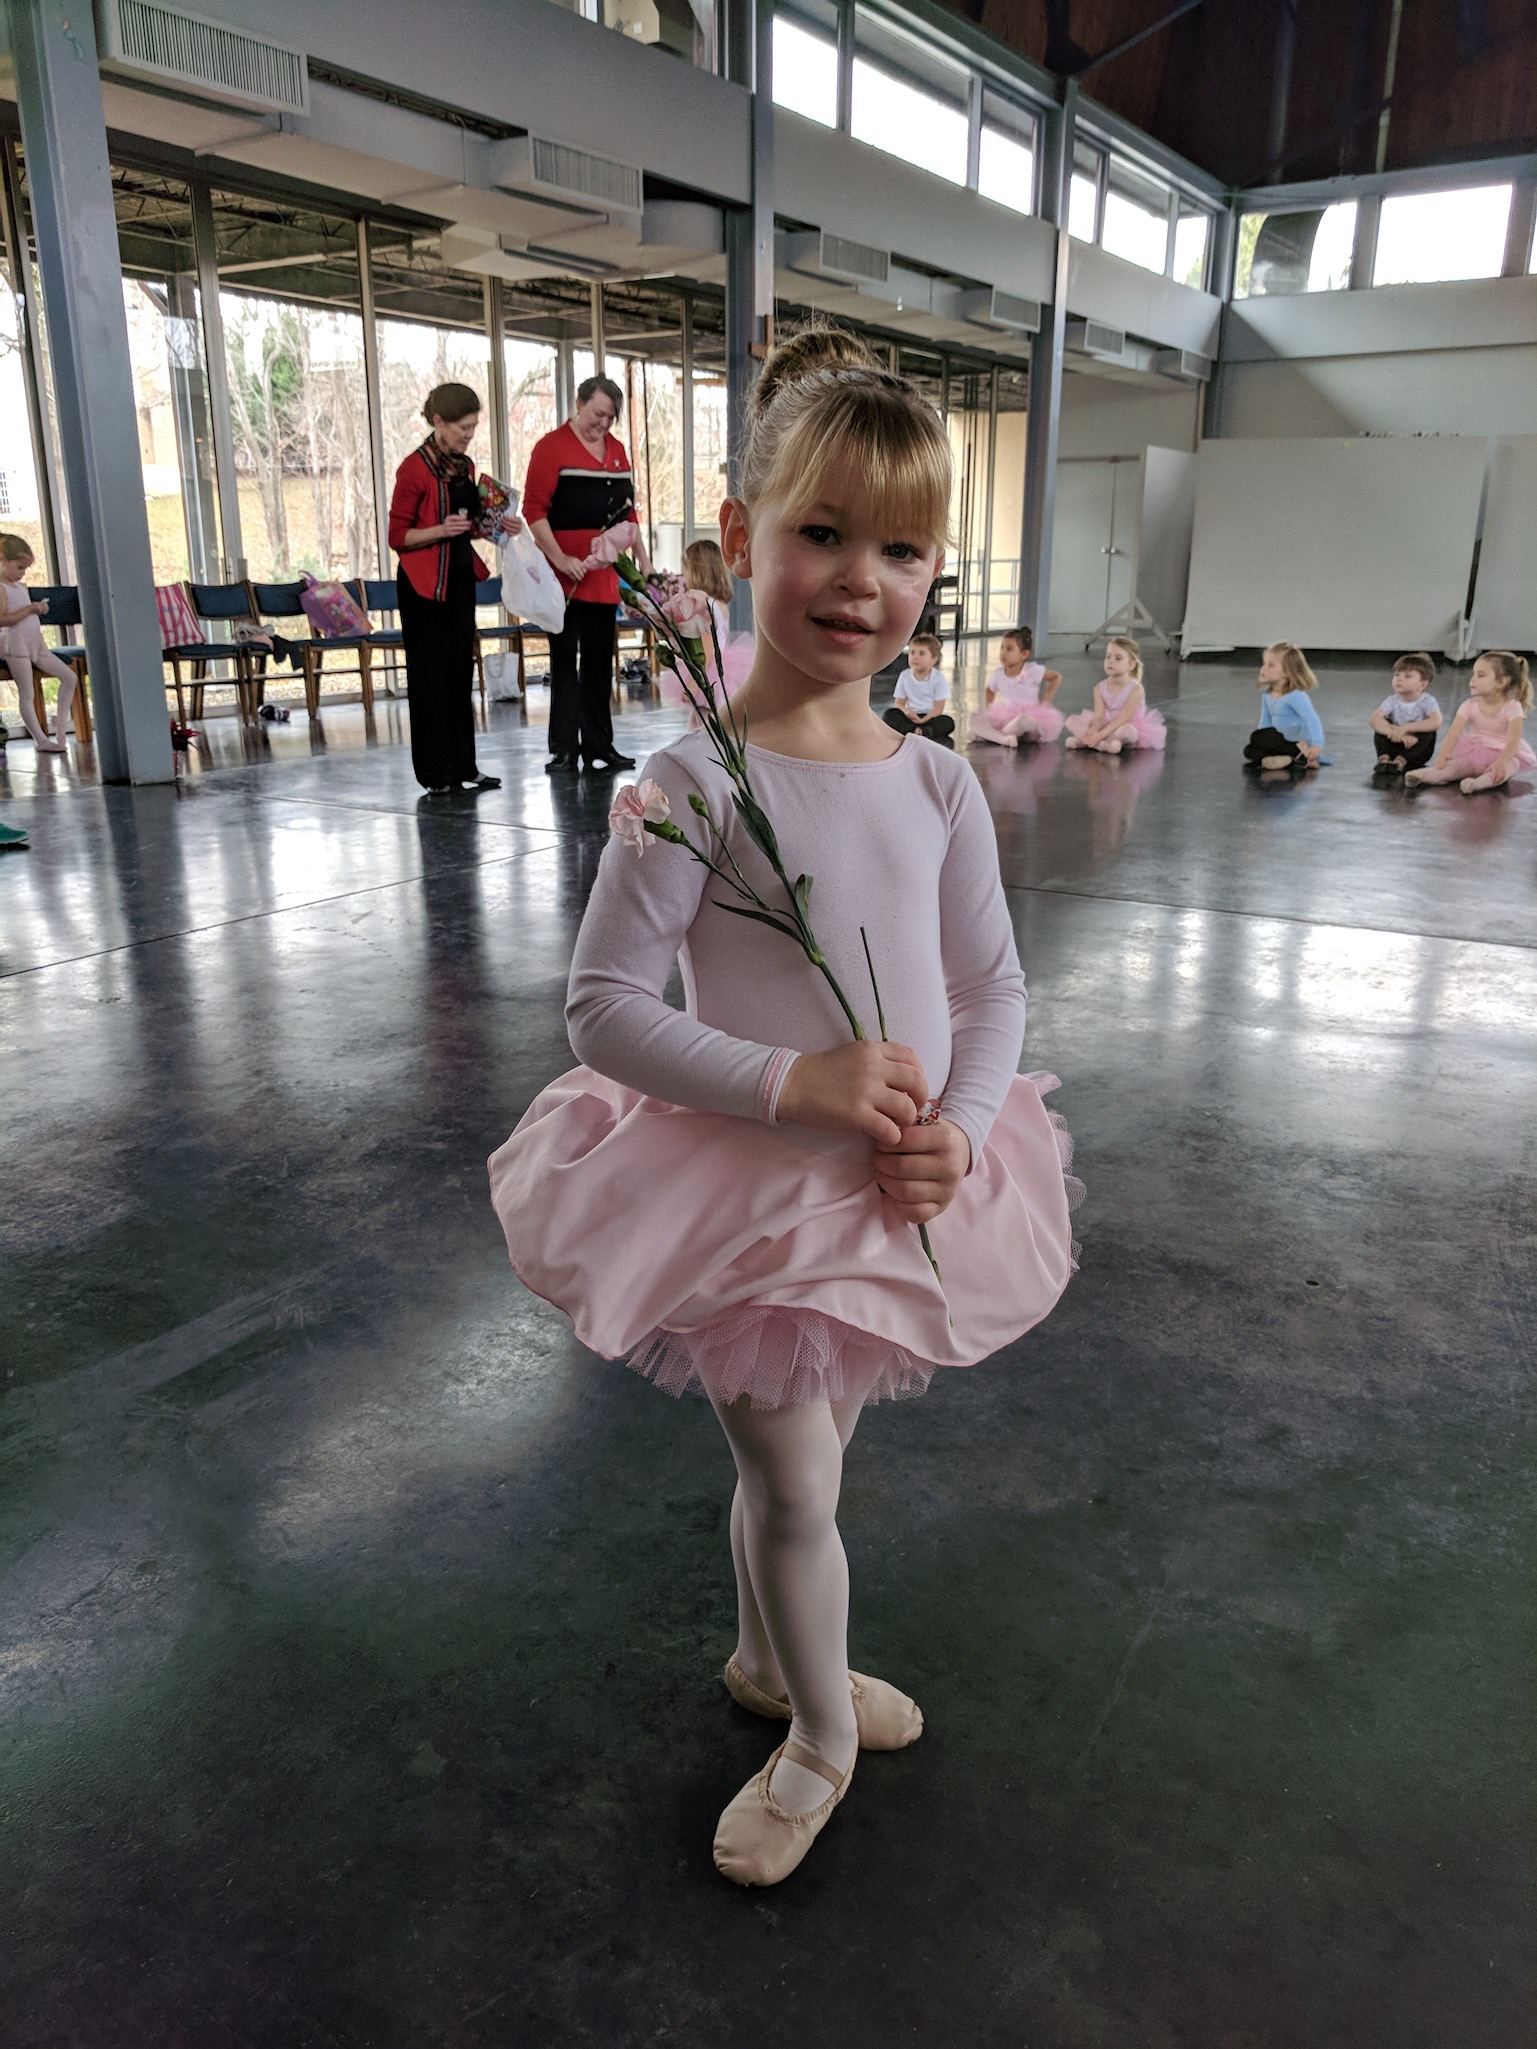 Dance - Sleepy Hollow Preschool and International Dance have had a longstanding partnership of over 30 years! Many dancers continue with the company after SHPS, and some even come back to help teach our young dancers! Miss Elizabeth, the owner of International Dance LLC, comes to Sleepy Hollow every Tuesday from 12:00 – 1:00PM and shares the gift of dance with our students. The class is a blend of pre-ballet, creative movement and international folk dance. It is an introduction to many styles of dance and music.In the fall we offer one free introductory class so any interested student can come try it out!Sessions: Fall, Winter, Spring